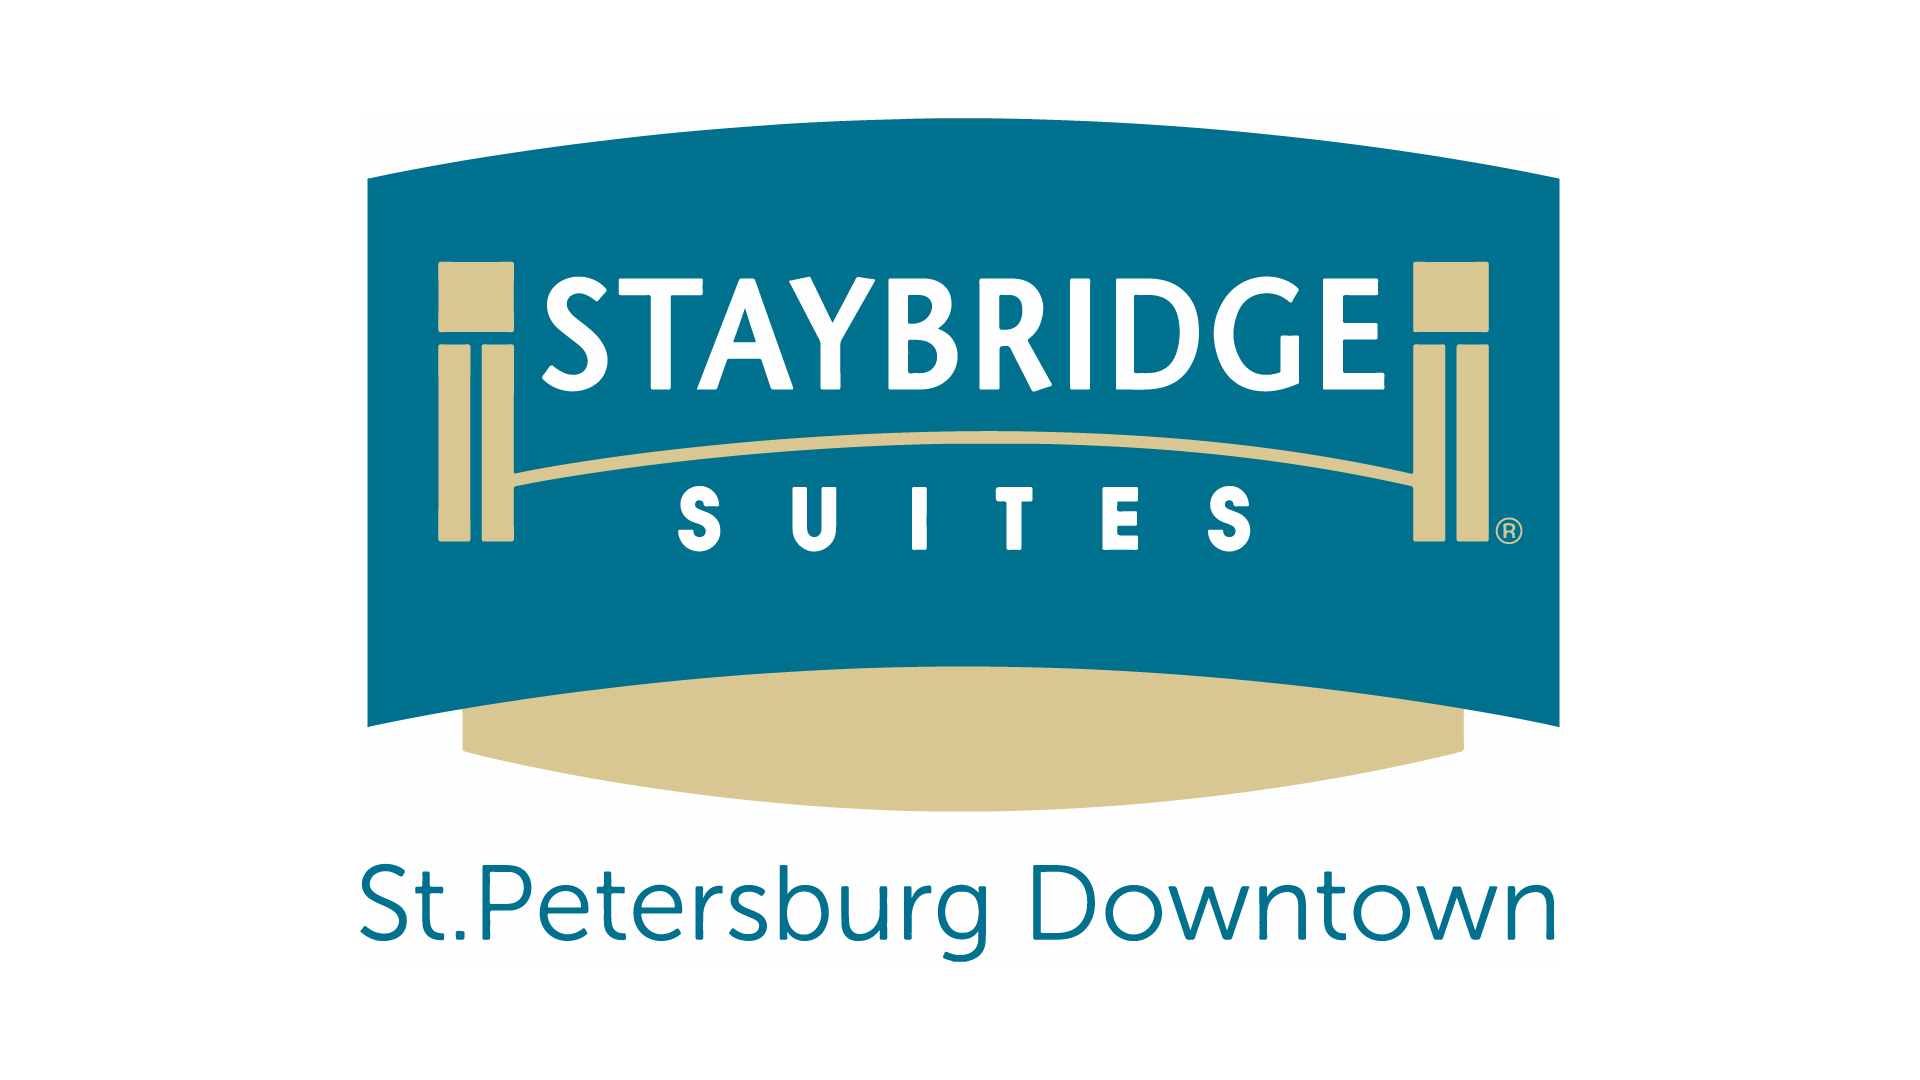 Staybridge Suites St. Petersburg logo